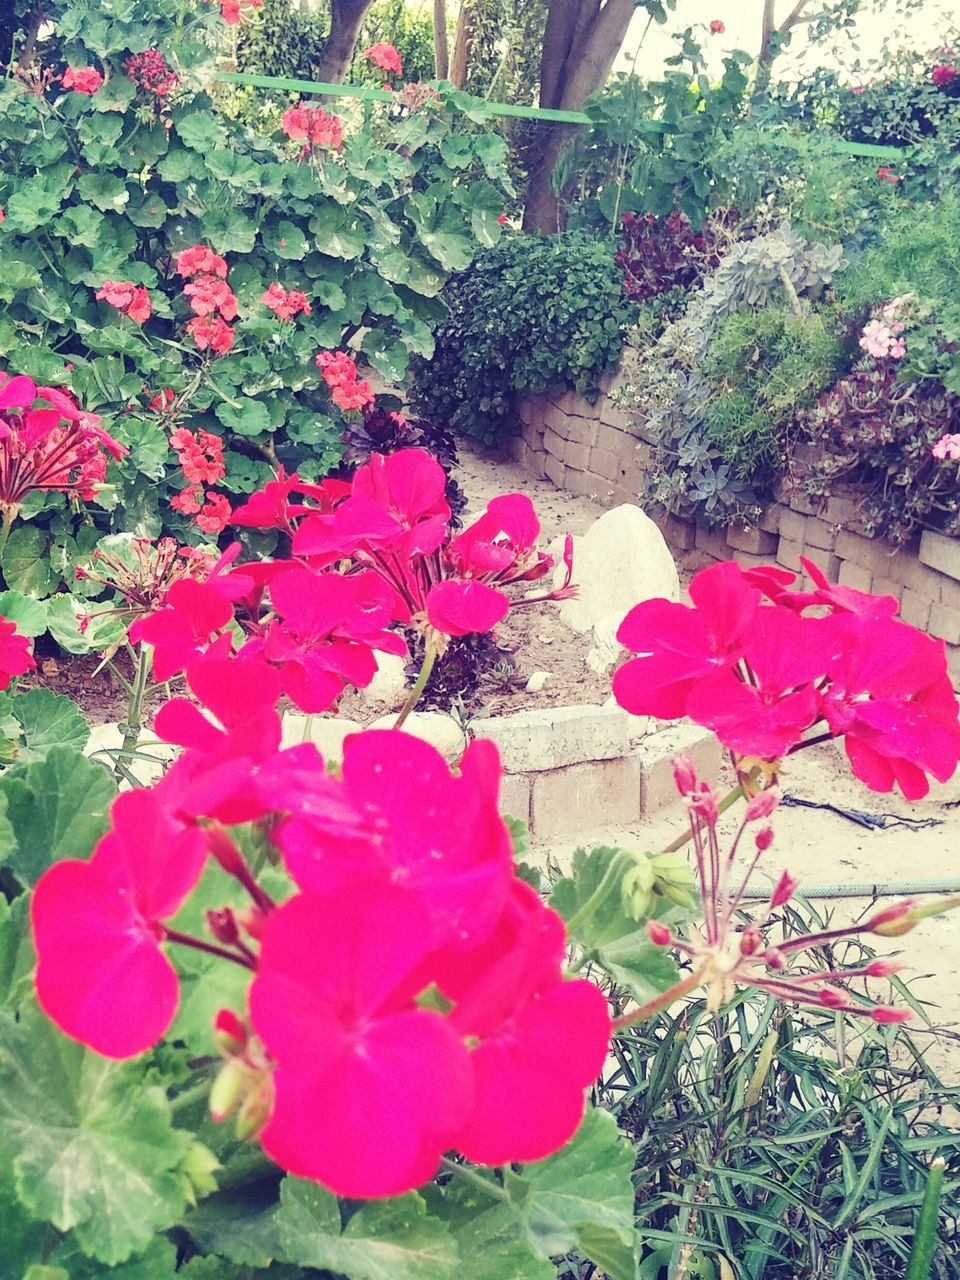 growth, flower, plant, nature, beauty in nature, pink color, no people, petal, day, outdoors, fragility, leaf, blooming, flower head, red, freshness, close-up, petunia, periwinkle